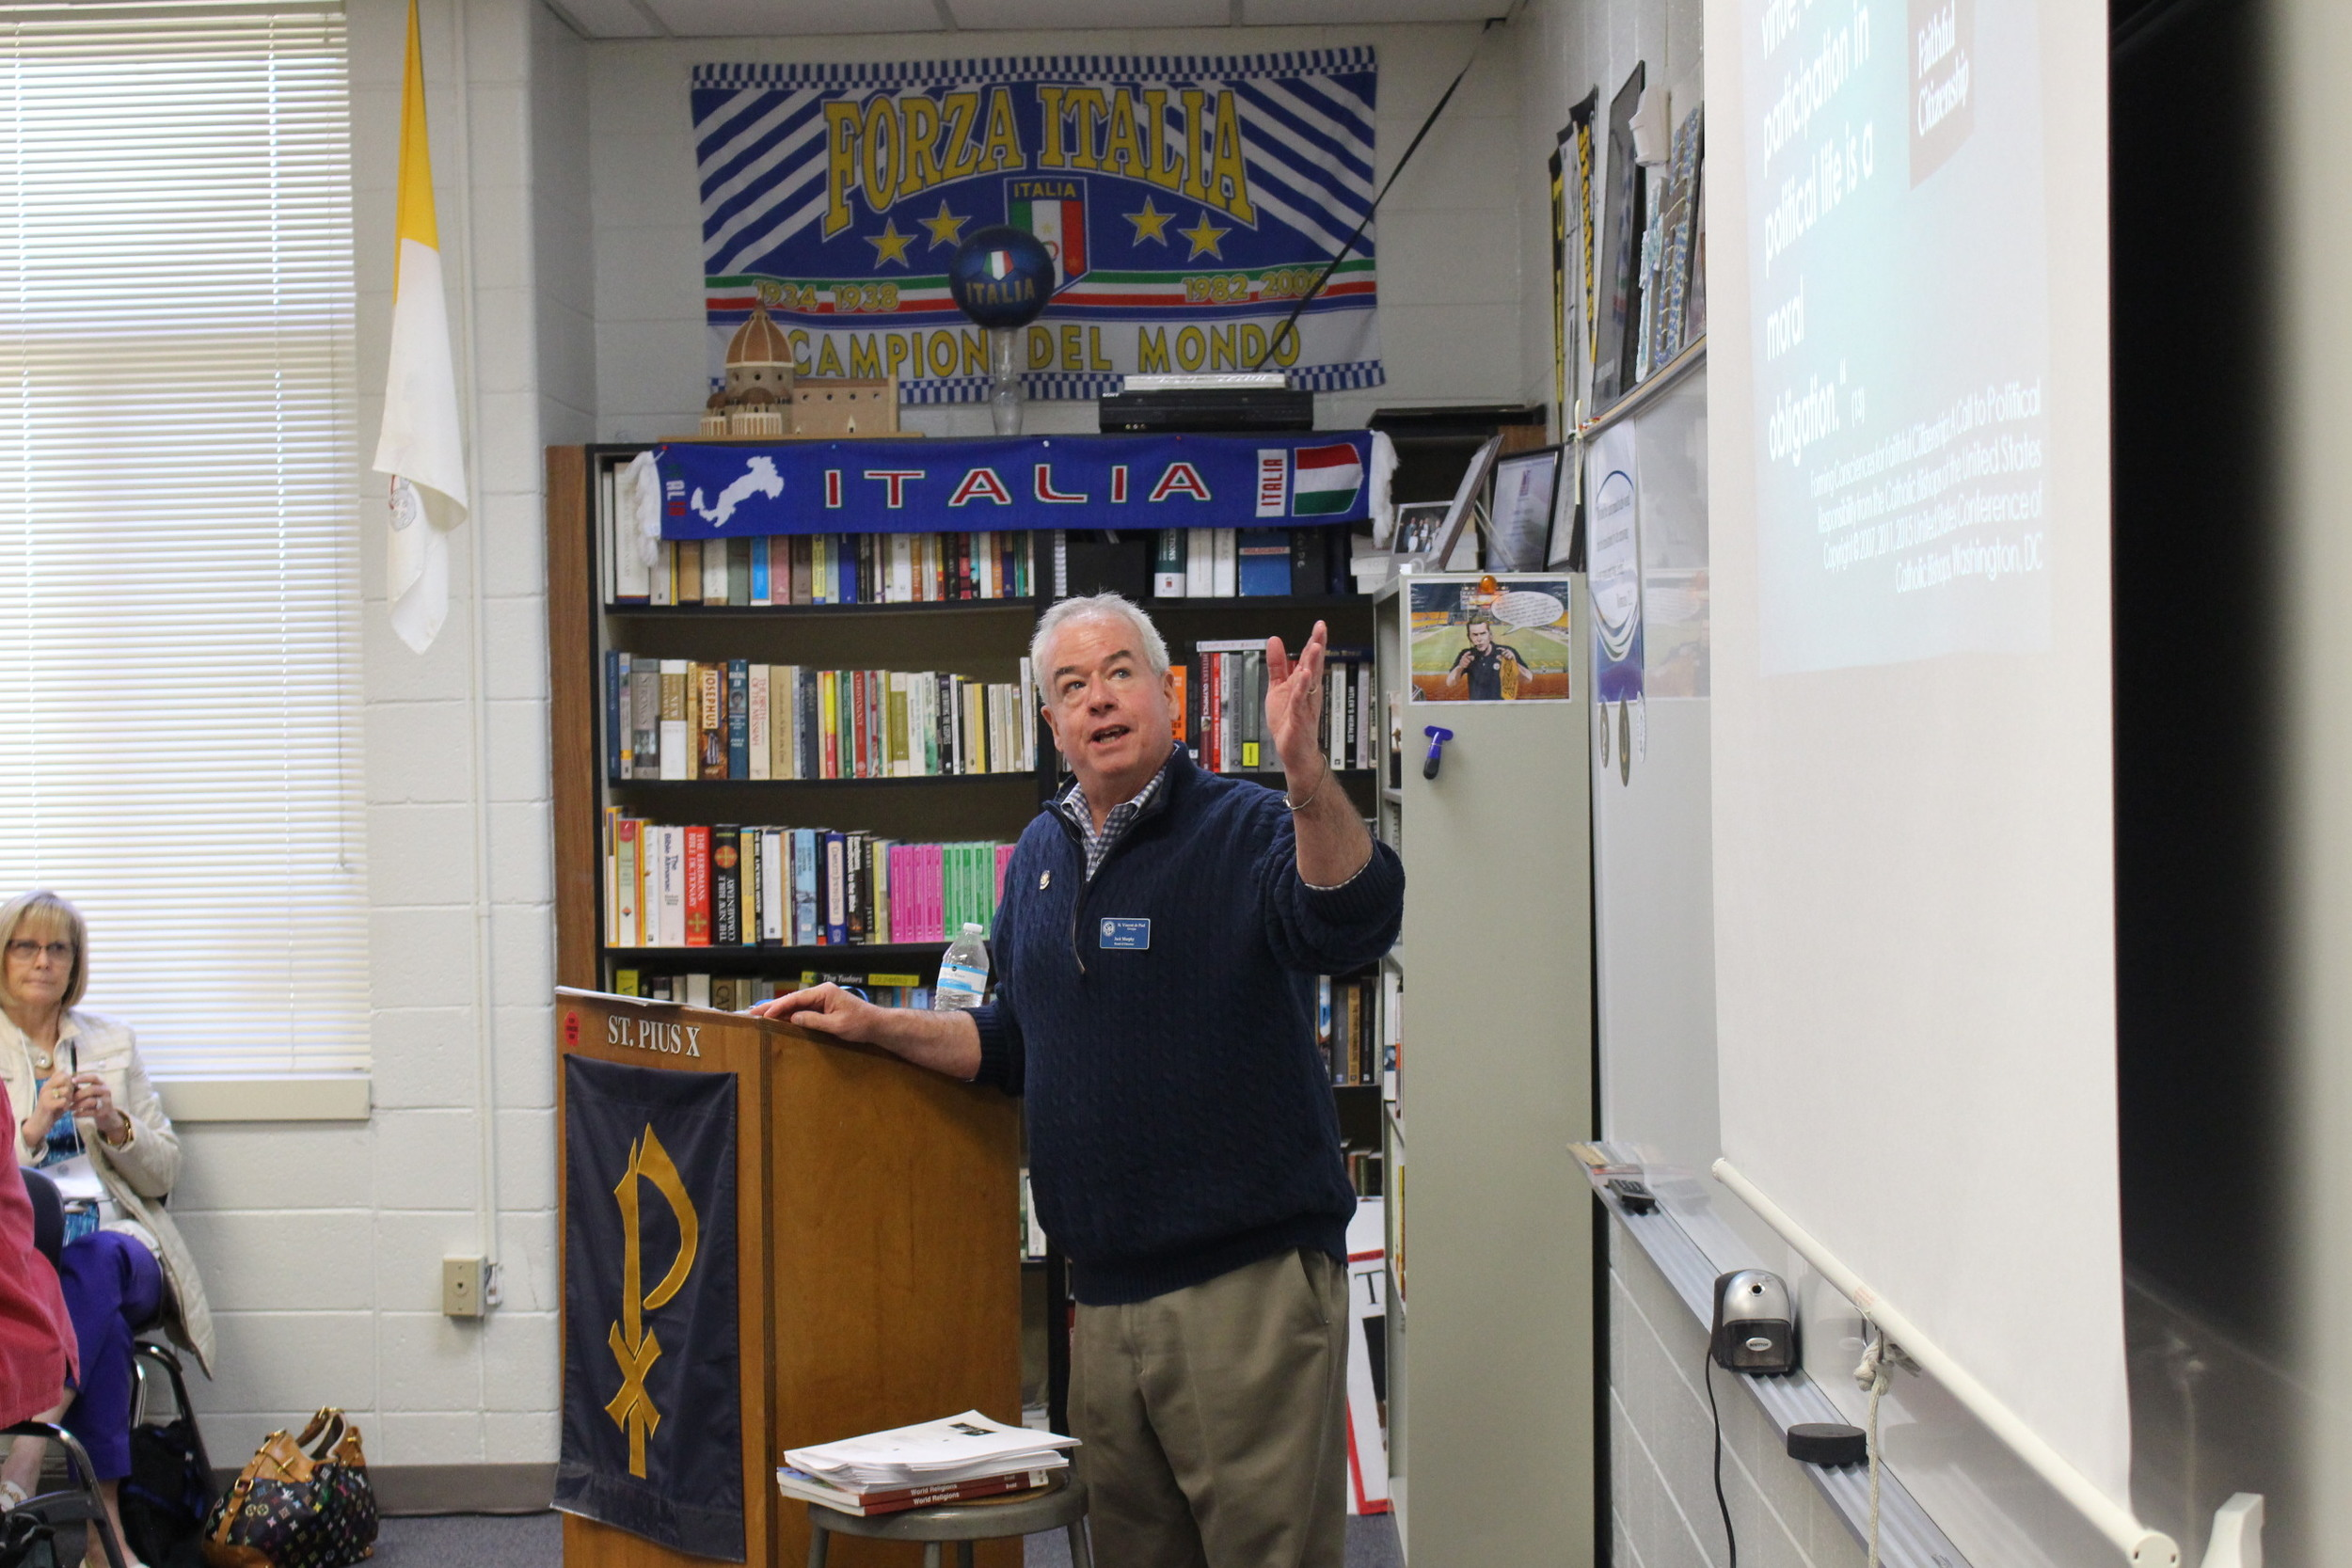 Jack Murphy presented a workshop on Spirituality of Advocacy